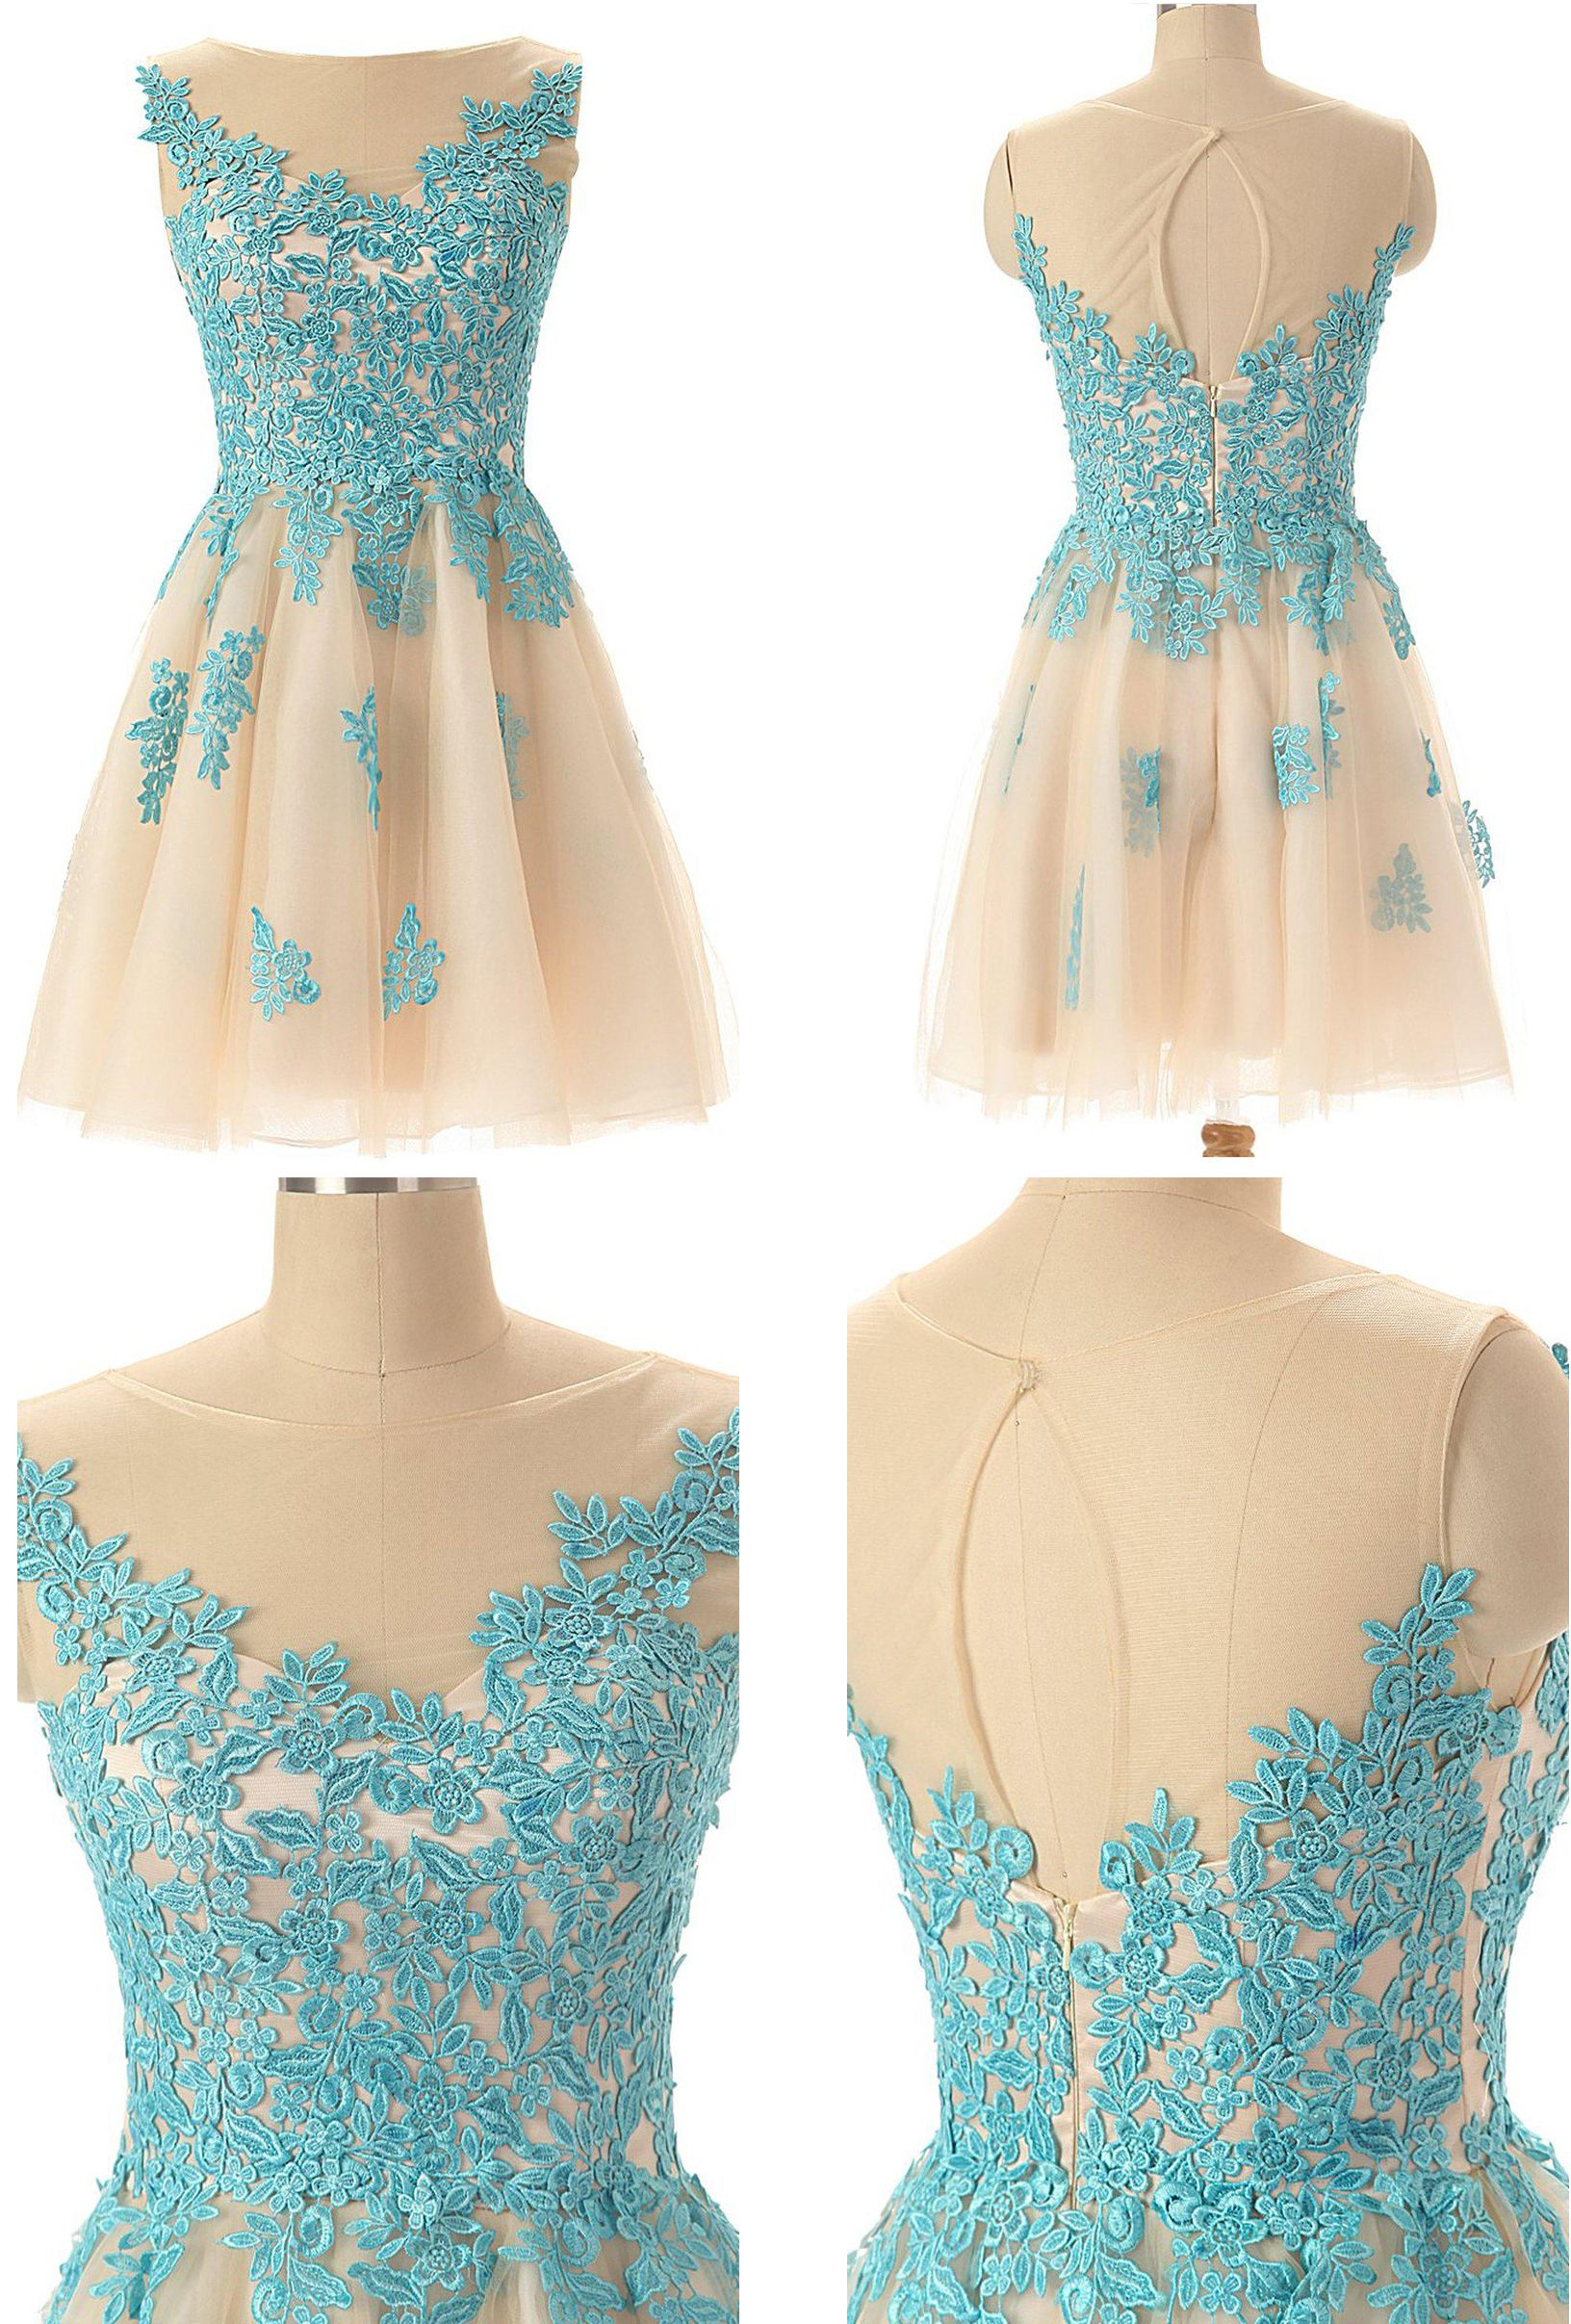 Sleeveless keyhole back short dress with lace appliques we offer